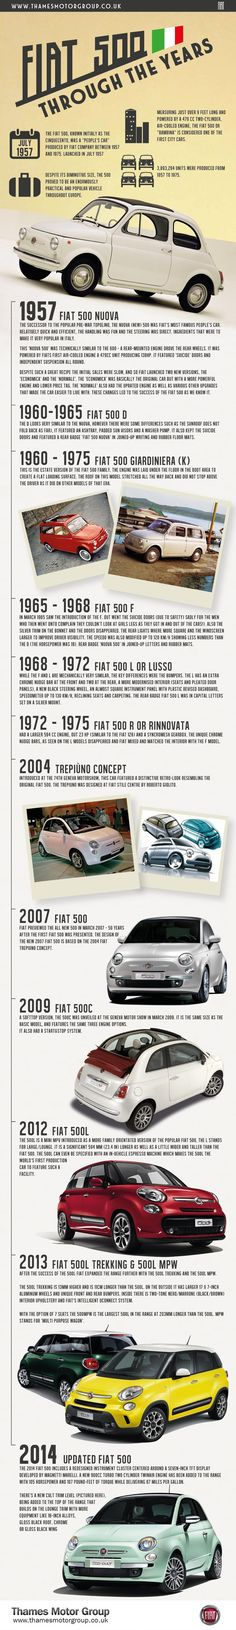 The Fiat 500 is one of the most iconic cars ever produced and is considered one of the first city cars. Below is an infographic detailing the different versions of the Fiat 500 and how it has changed between 1957 and Fiat Cinquecento, Fiat Abarth, Vespa, Fiat 500 Pop, Car Facts, Fiat Cars, Vintage Restaurant, Vintage Air, Chevy Chevrolet